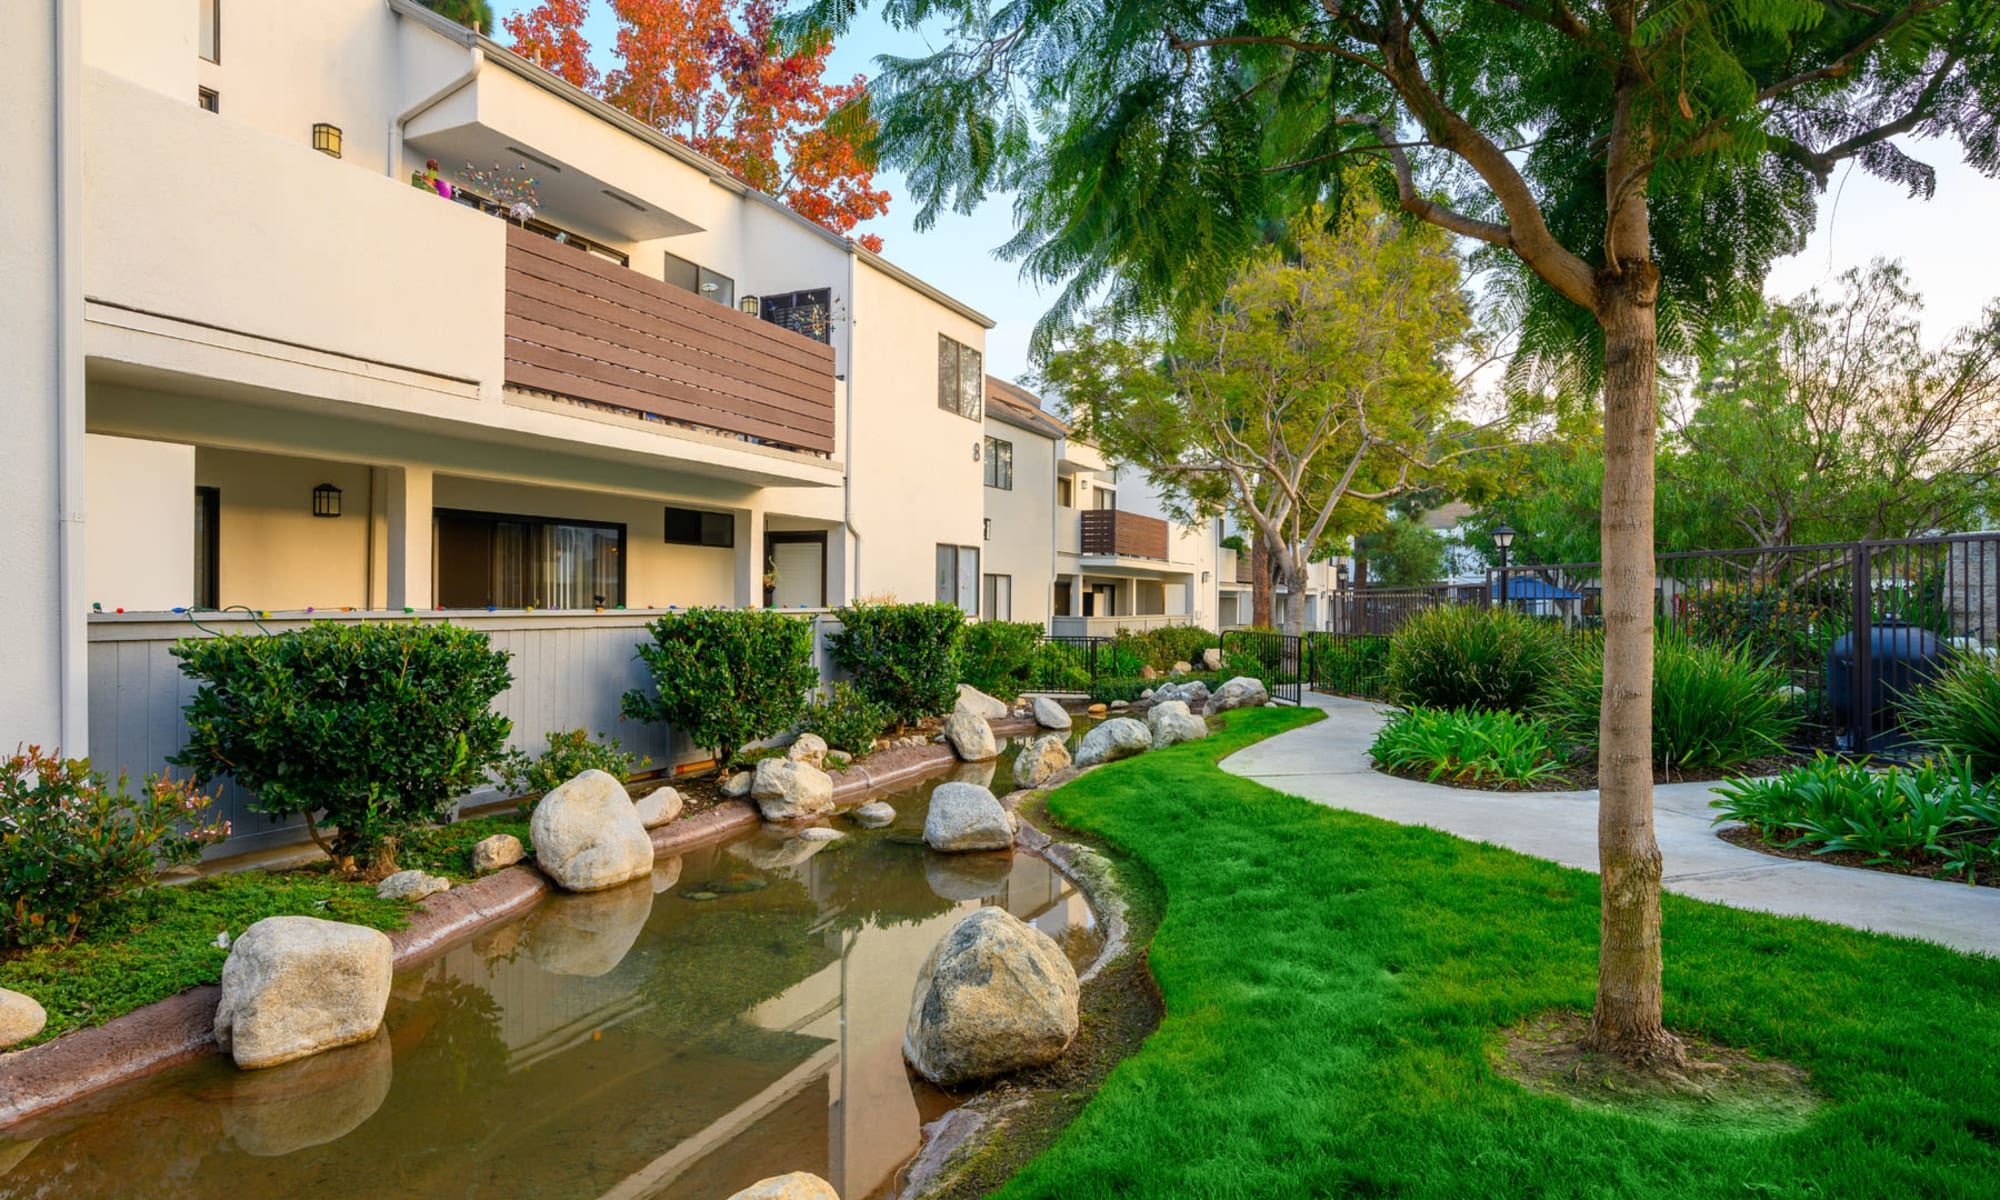 A small pond, green grass, and mature trees outside resident buildings at Sendero Huntington Beach in Huntington Beach, California